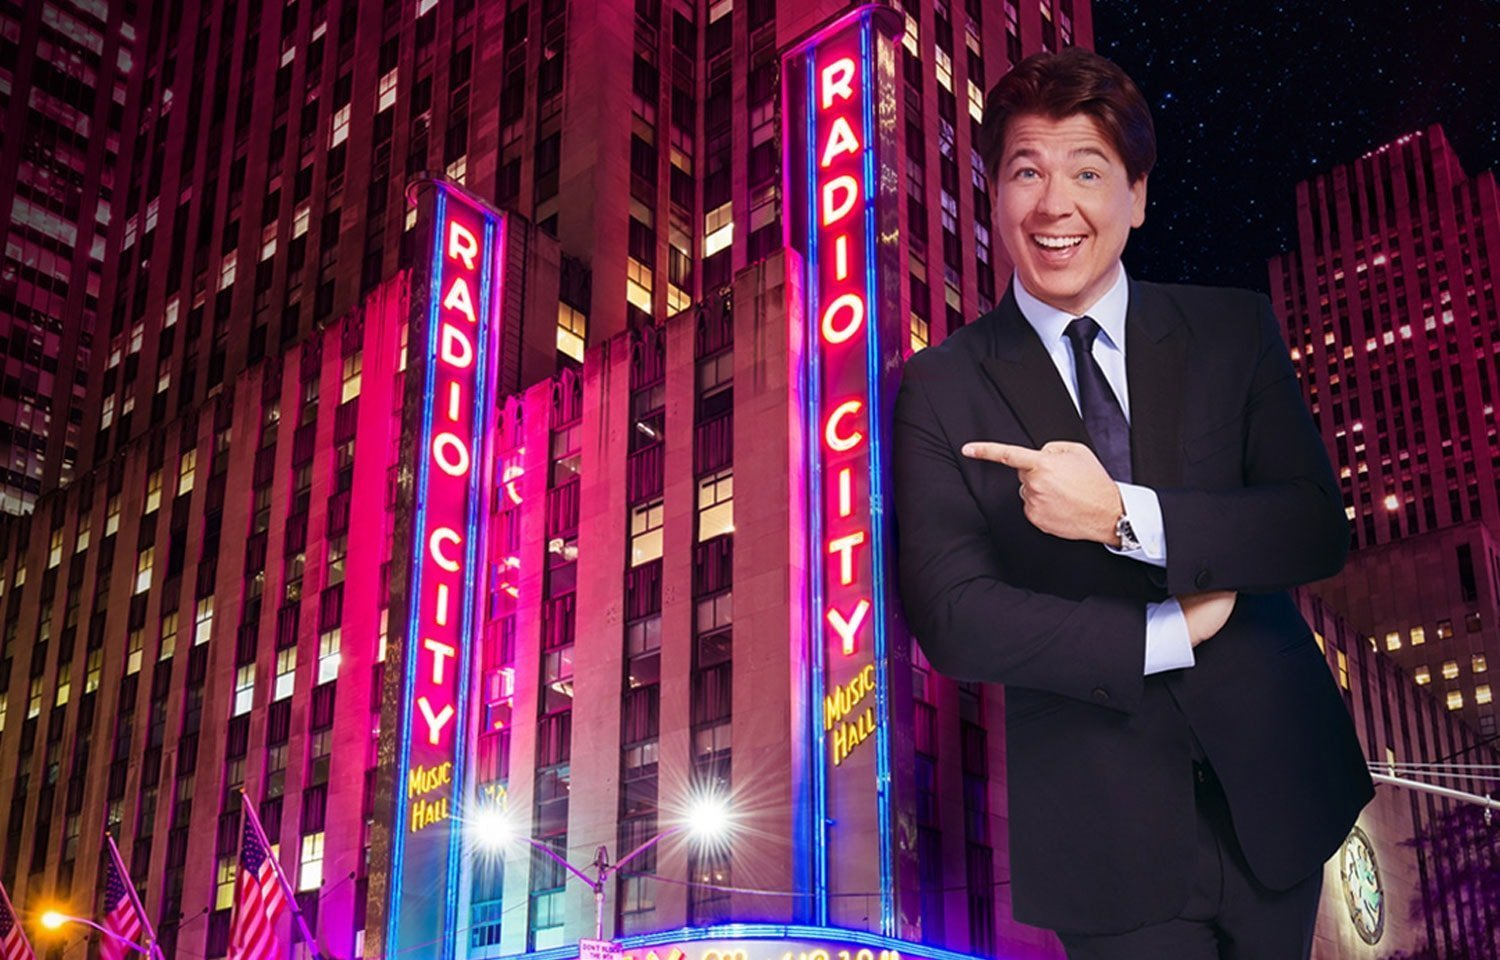 MICHAEL MCINTYRE LIVE AT NEW YORK'S RADIO CITY MUSIC HALL